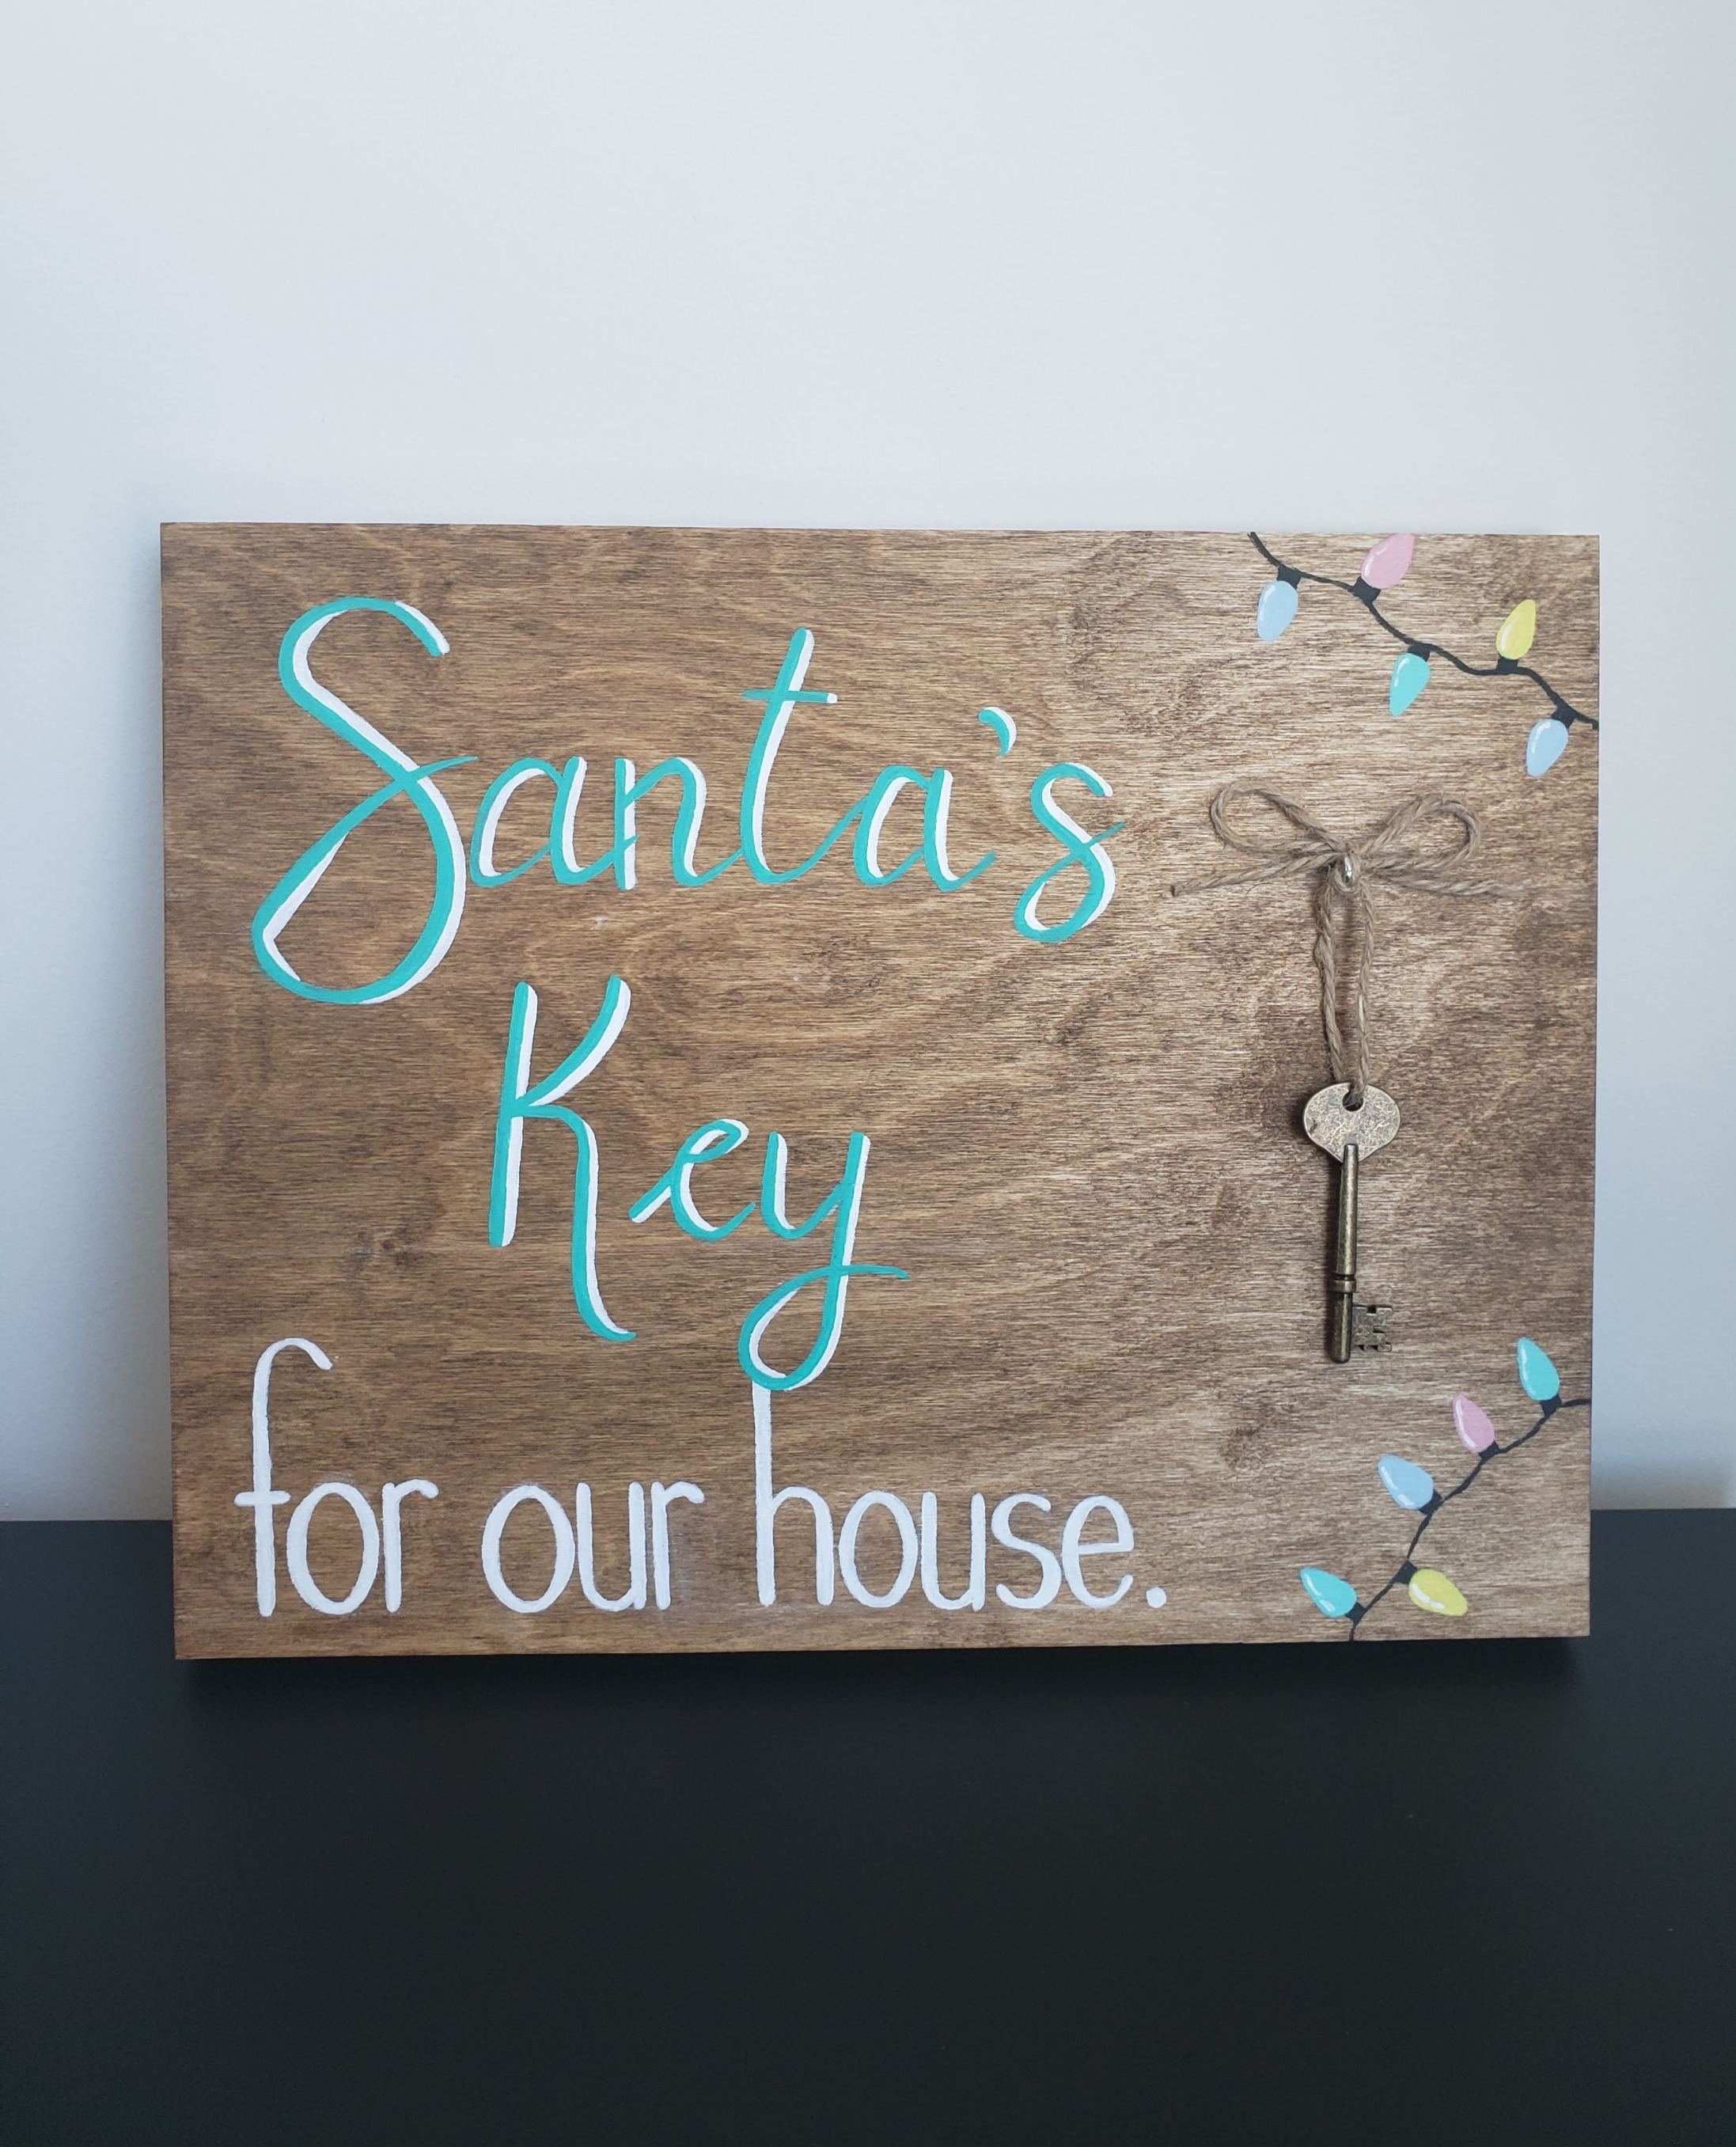 Santa's Key for our House (2018)